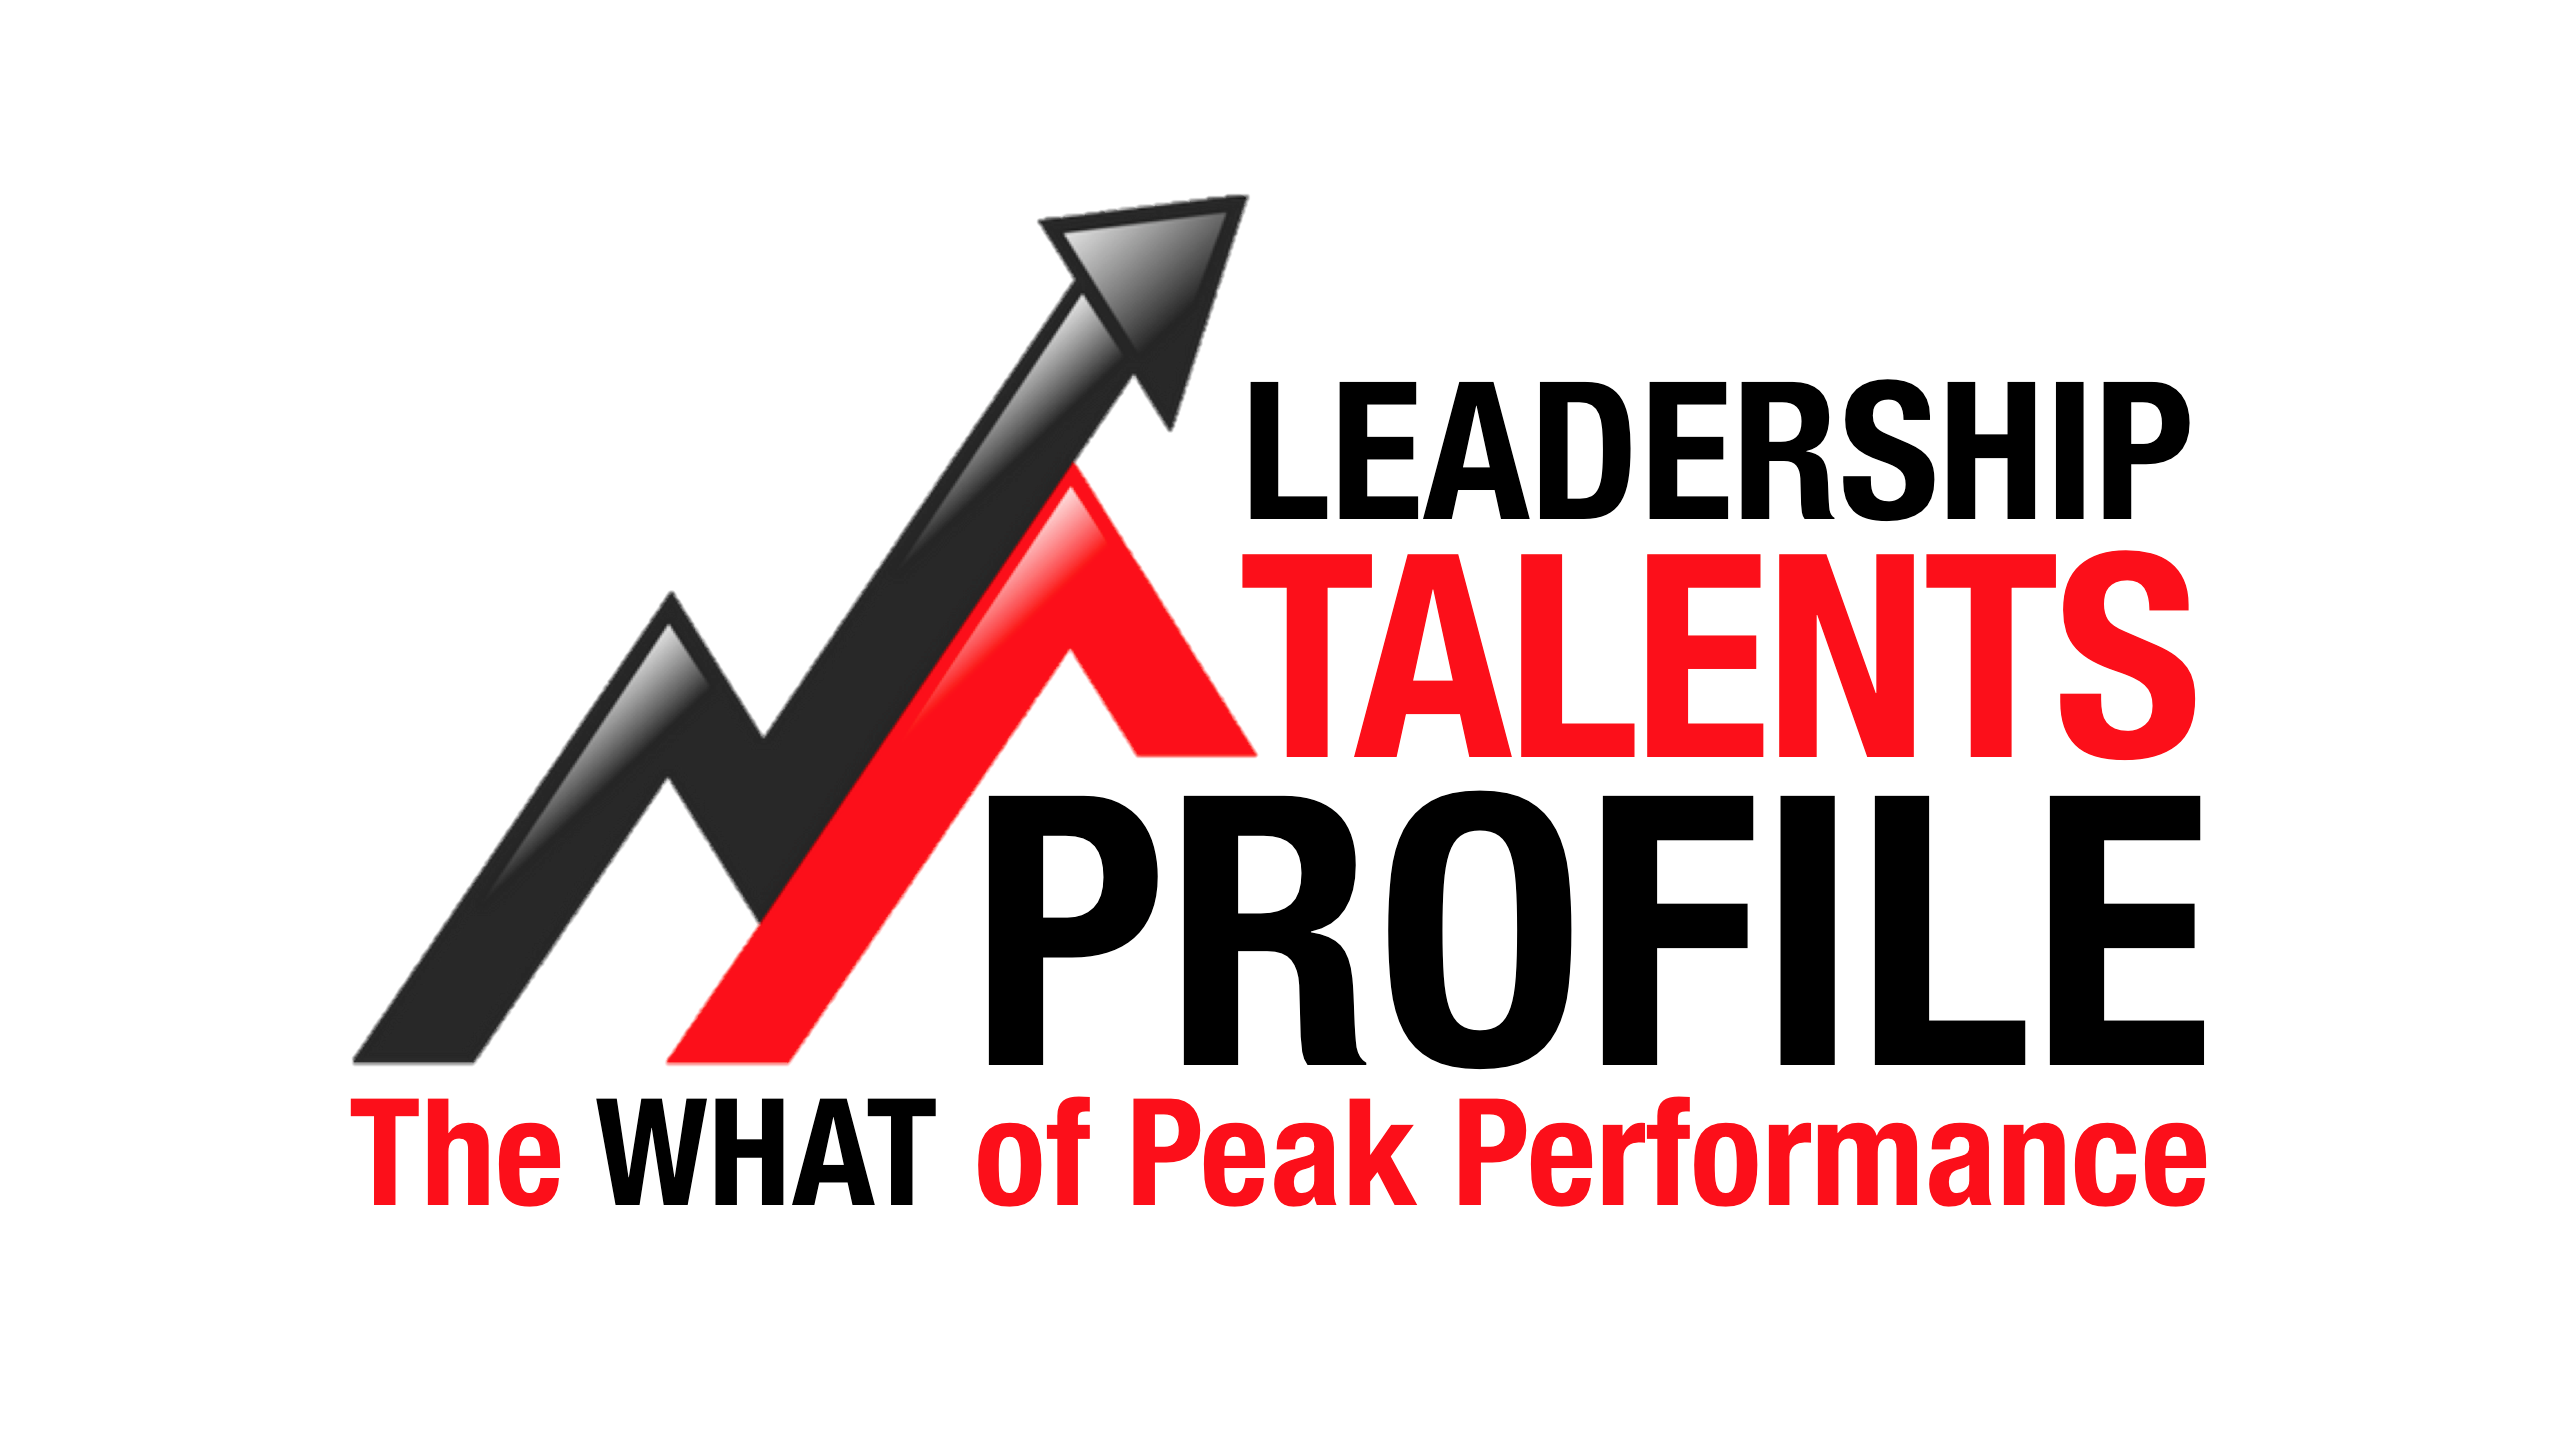 LEADERSHIP TALENTS PROFILE